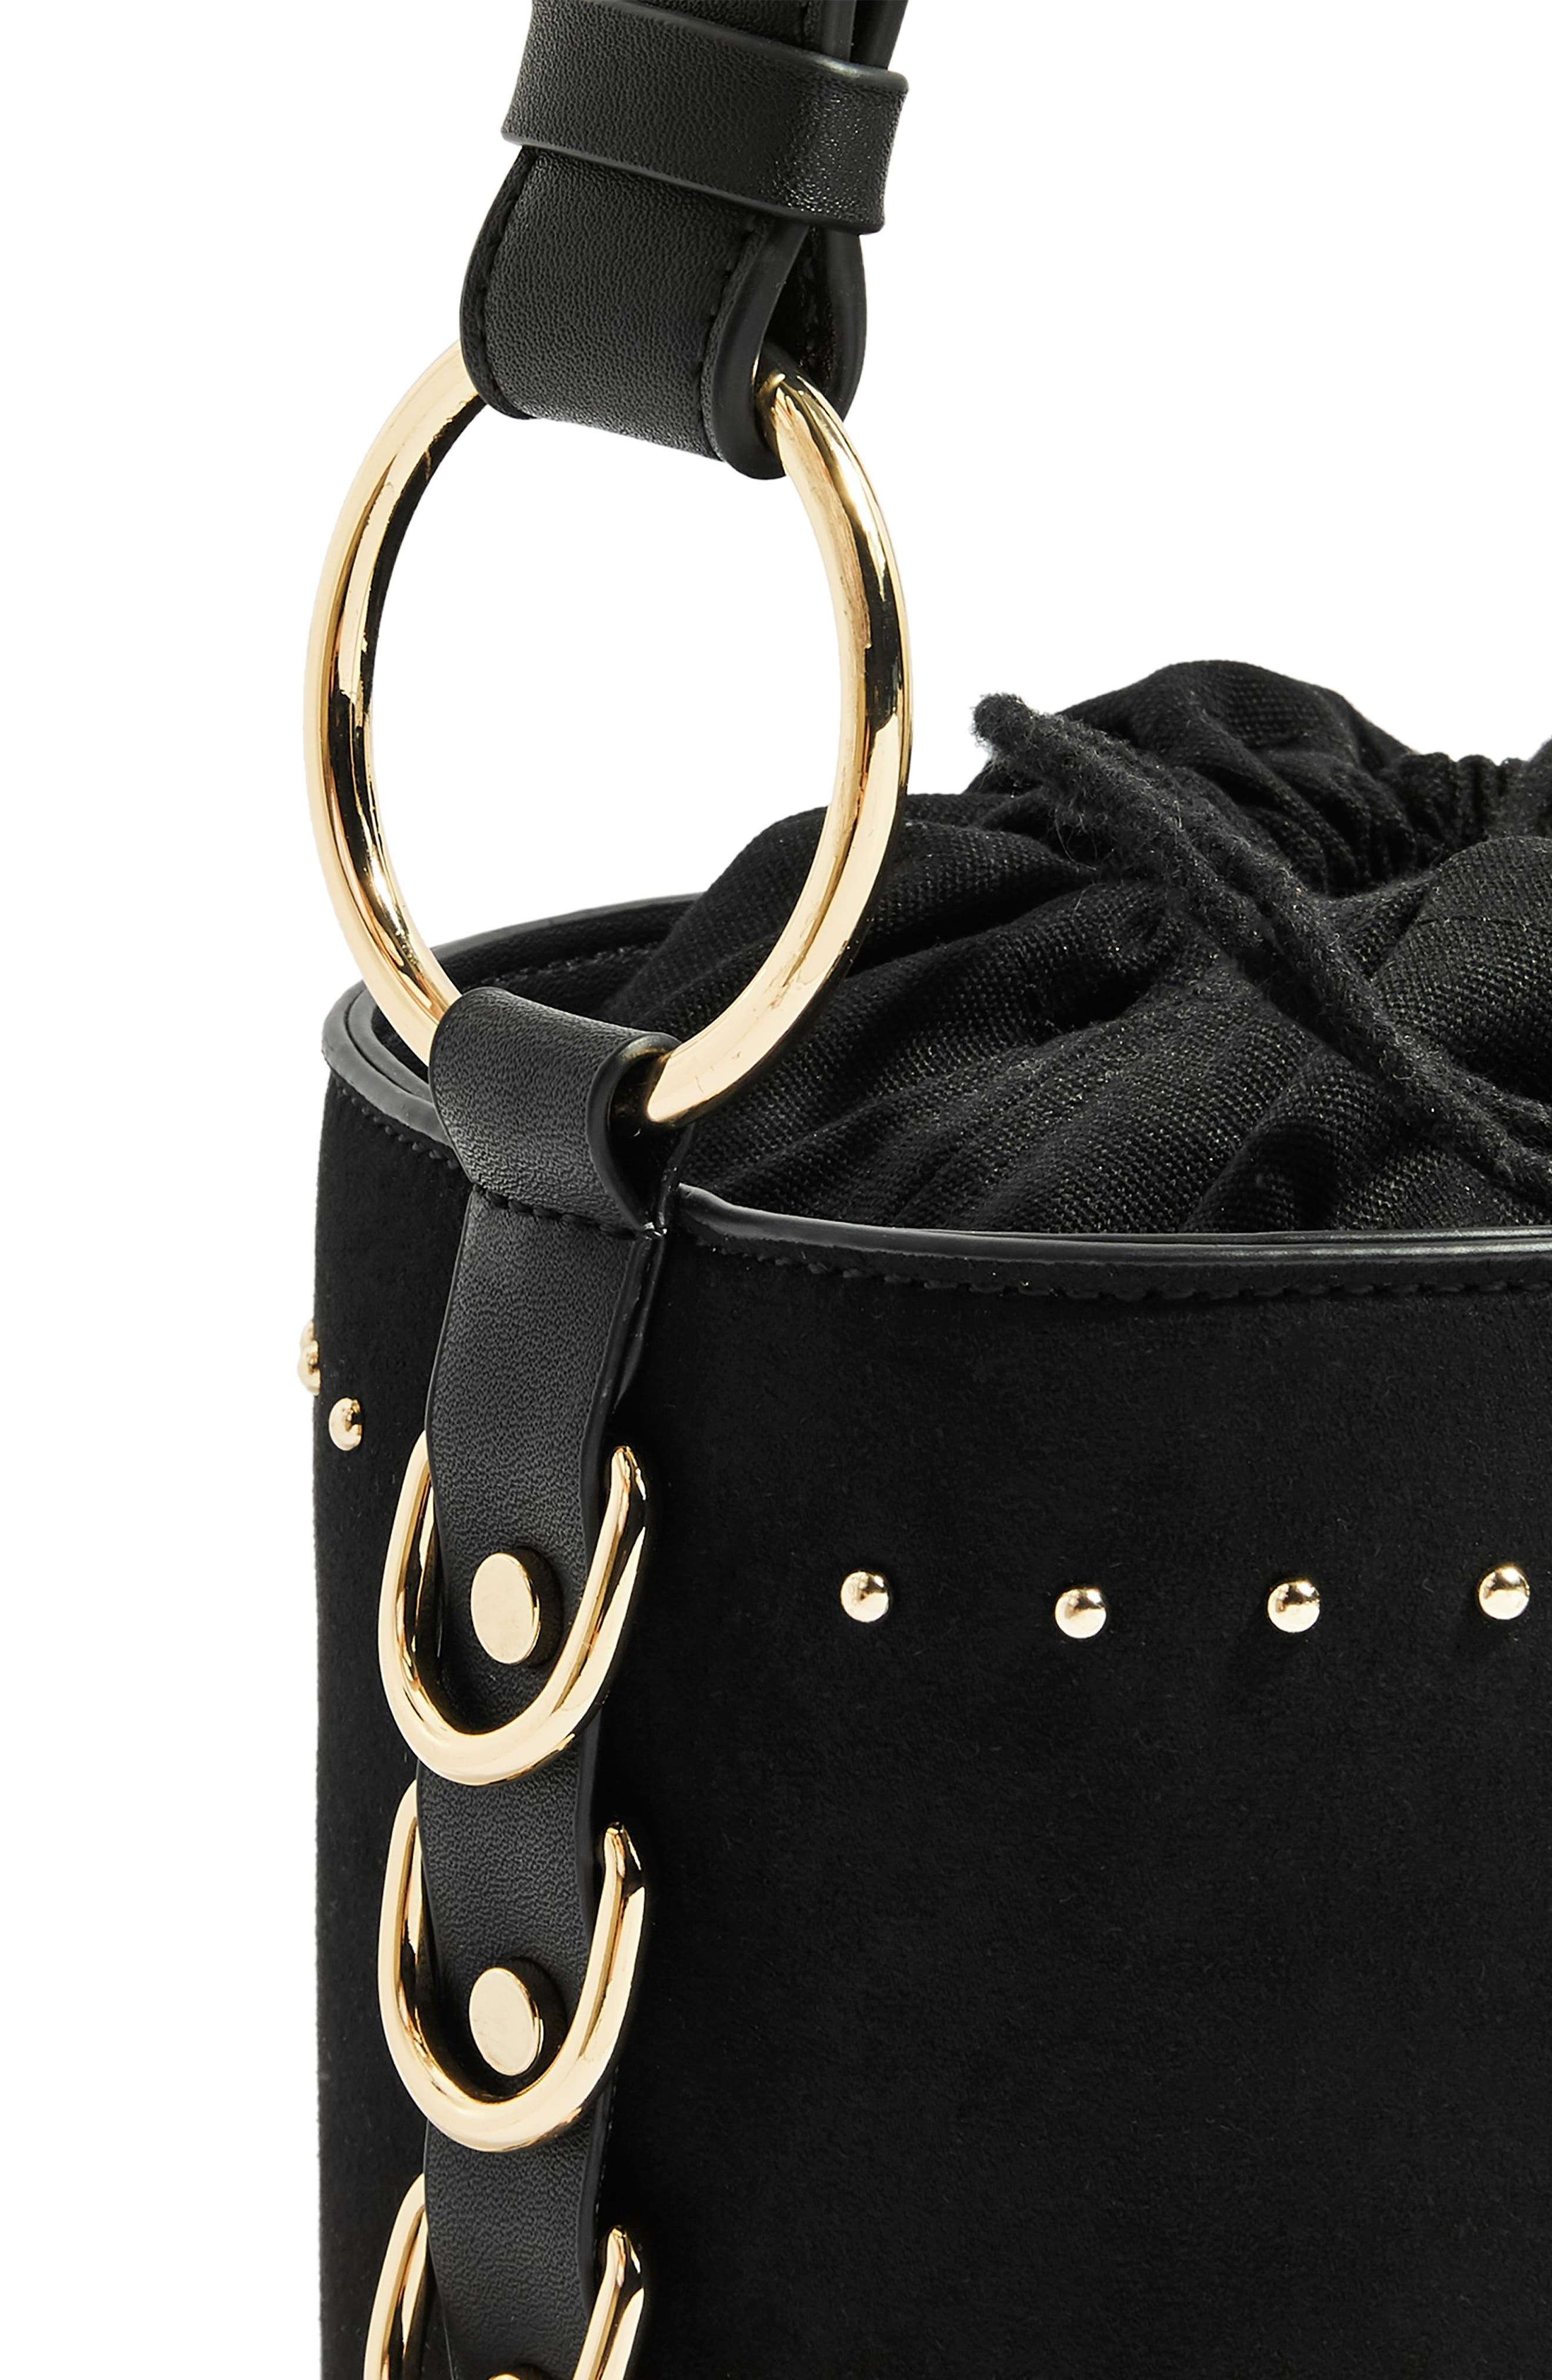 Bianca Studded Faux Leather Bucket Bag,                             Alternate thumbnail 7, color,                             001